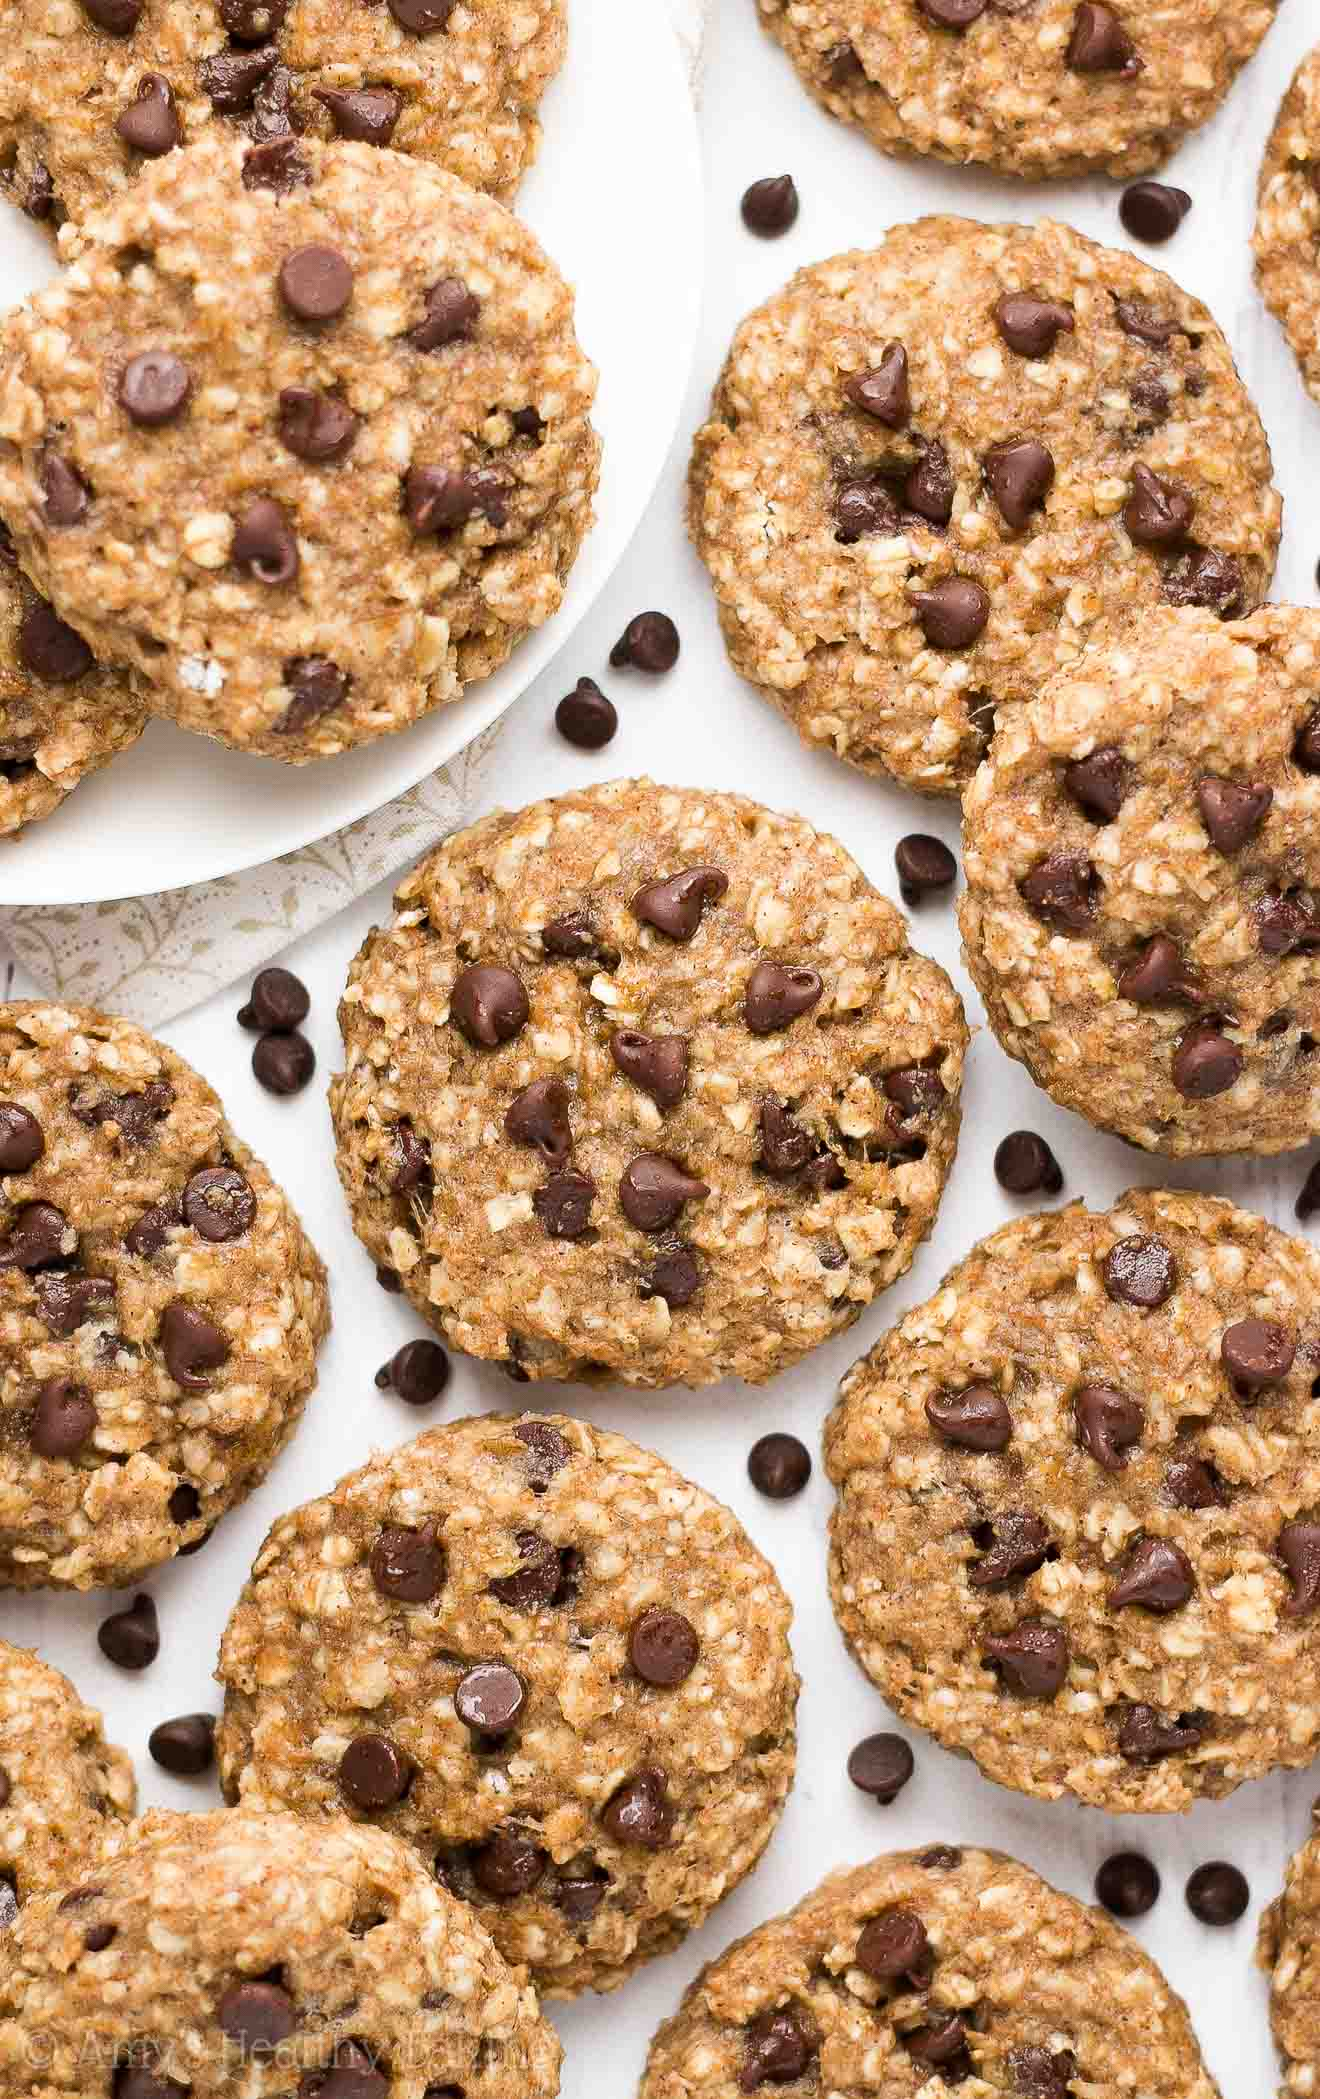 Healthy Chocolate Chip Banana Oatmeal Breakfast Cookies | Amy's ...